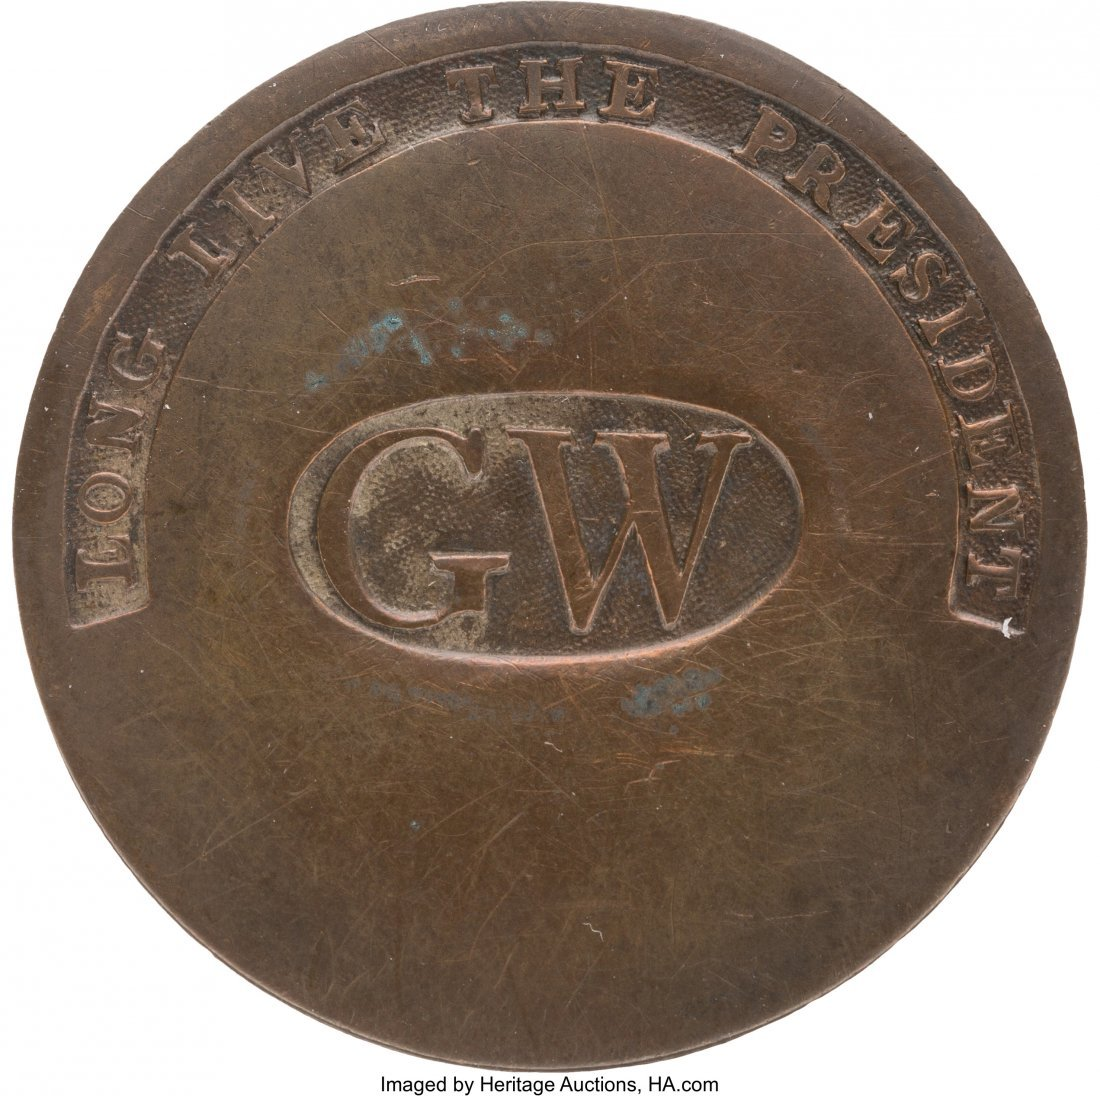 43012: George Washington: High Grade GW in Oval Inaugur